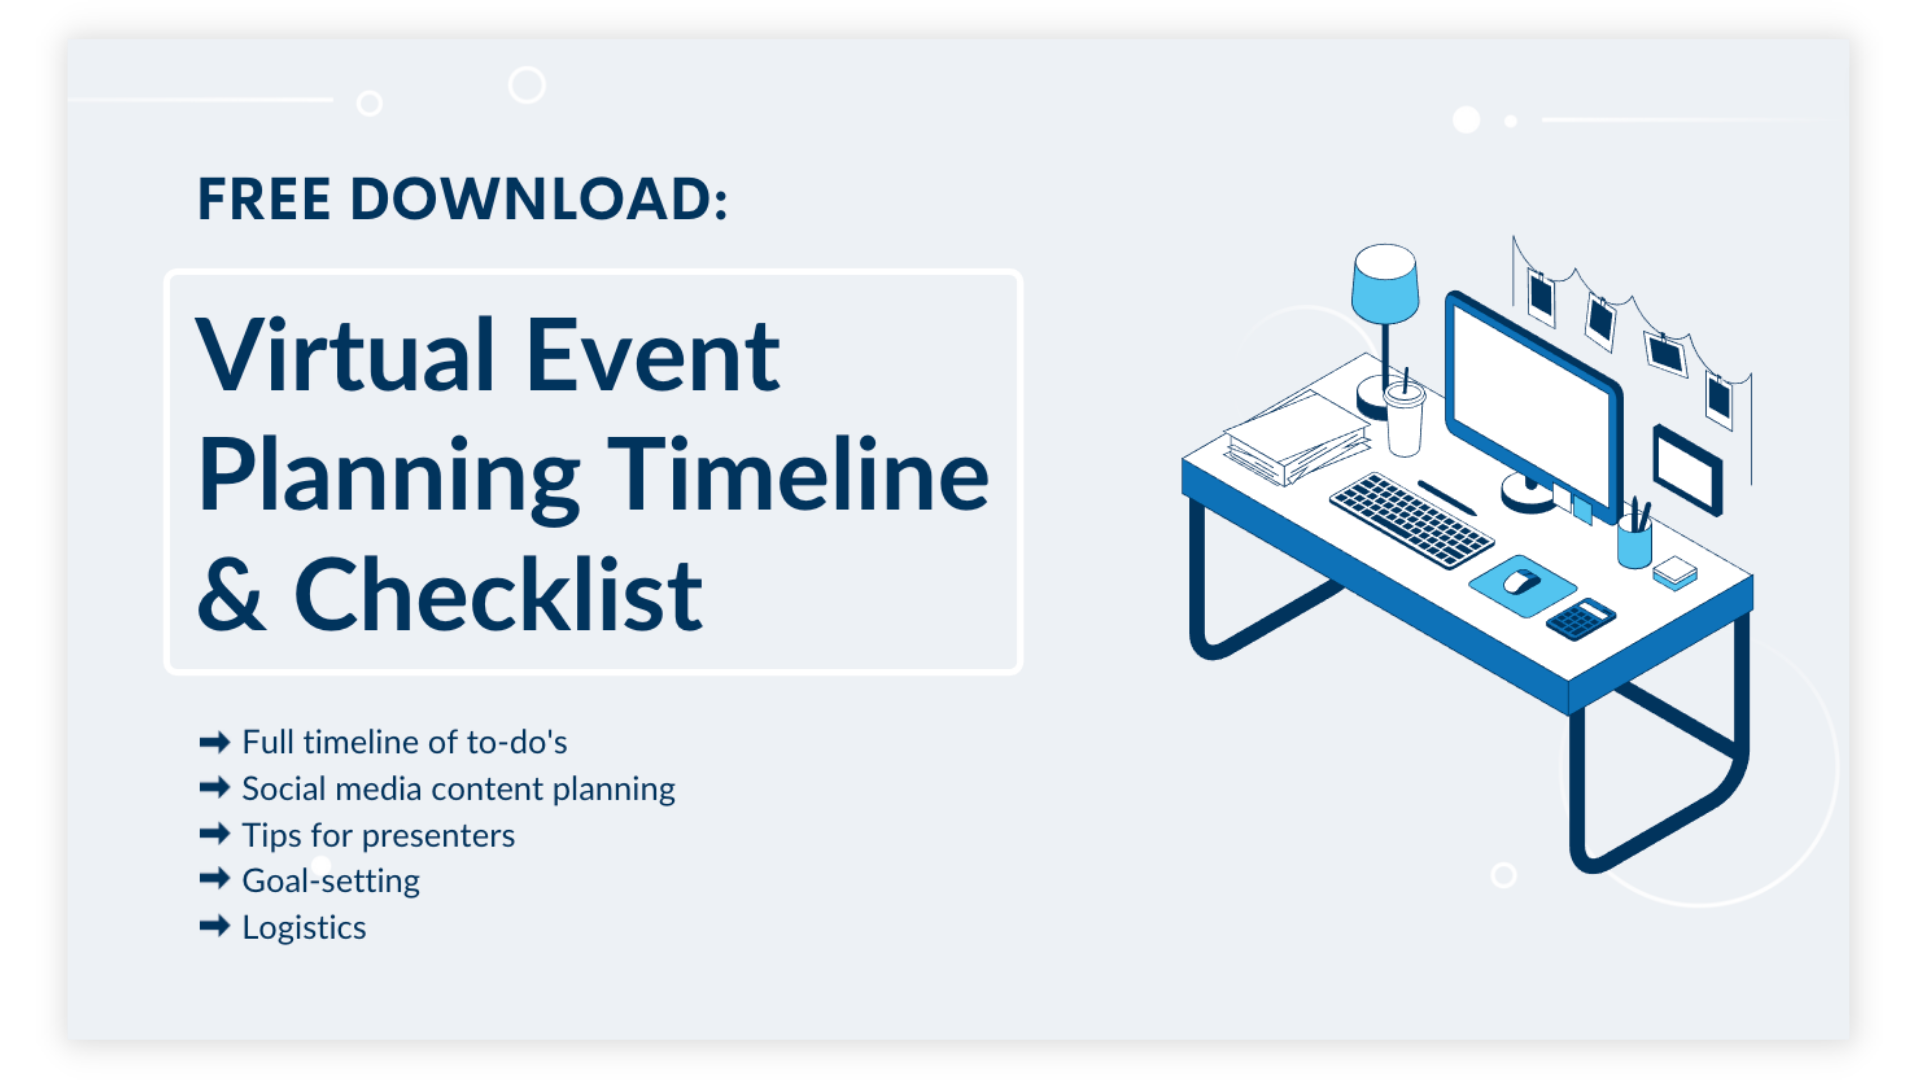 Download our Virtual Event Planning Timeline & Checklist